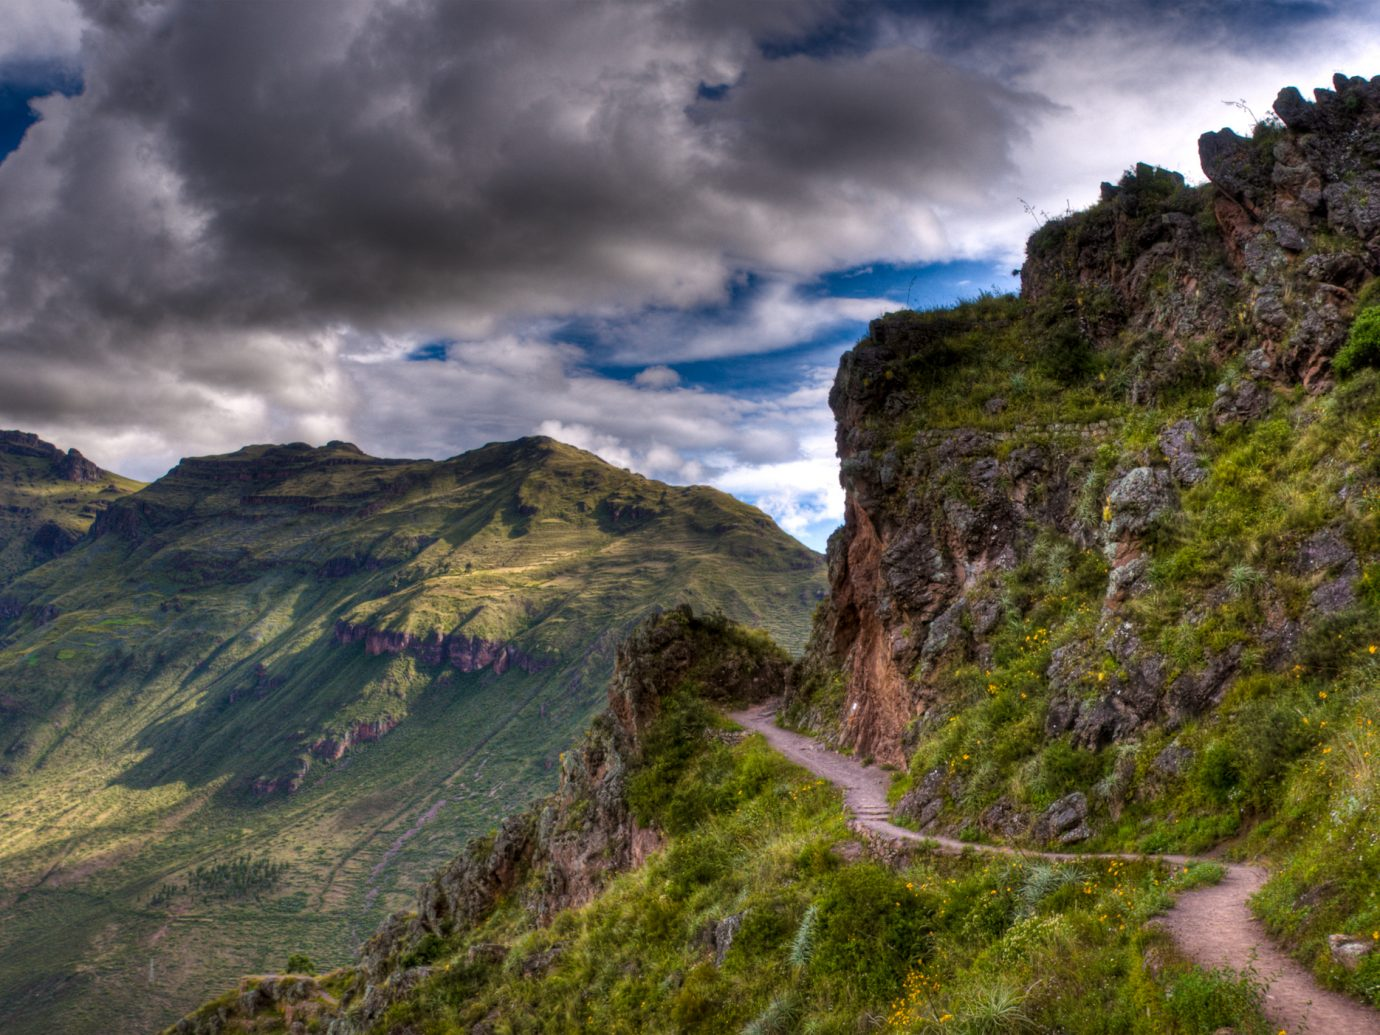 HDR image with multiple exposures of the Inca Trail